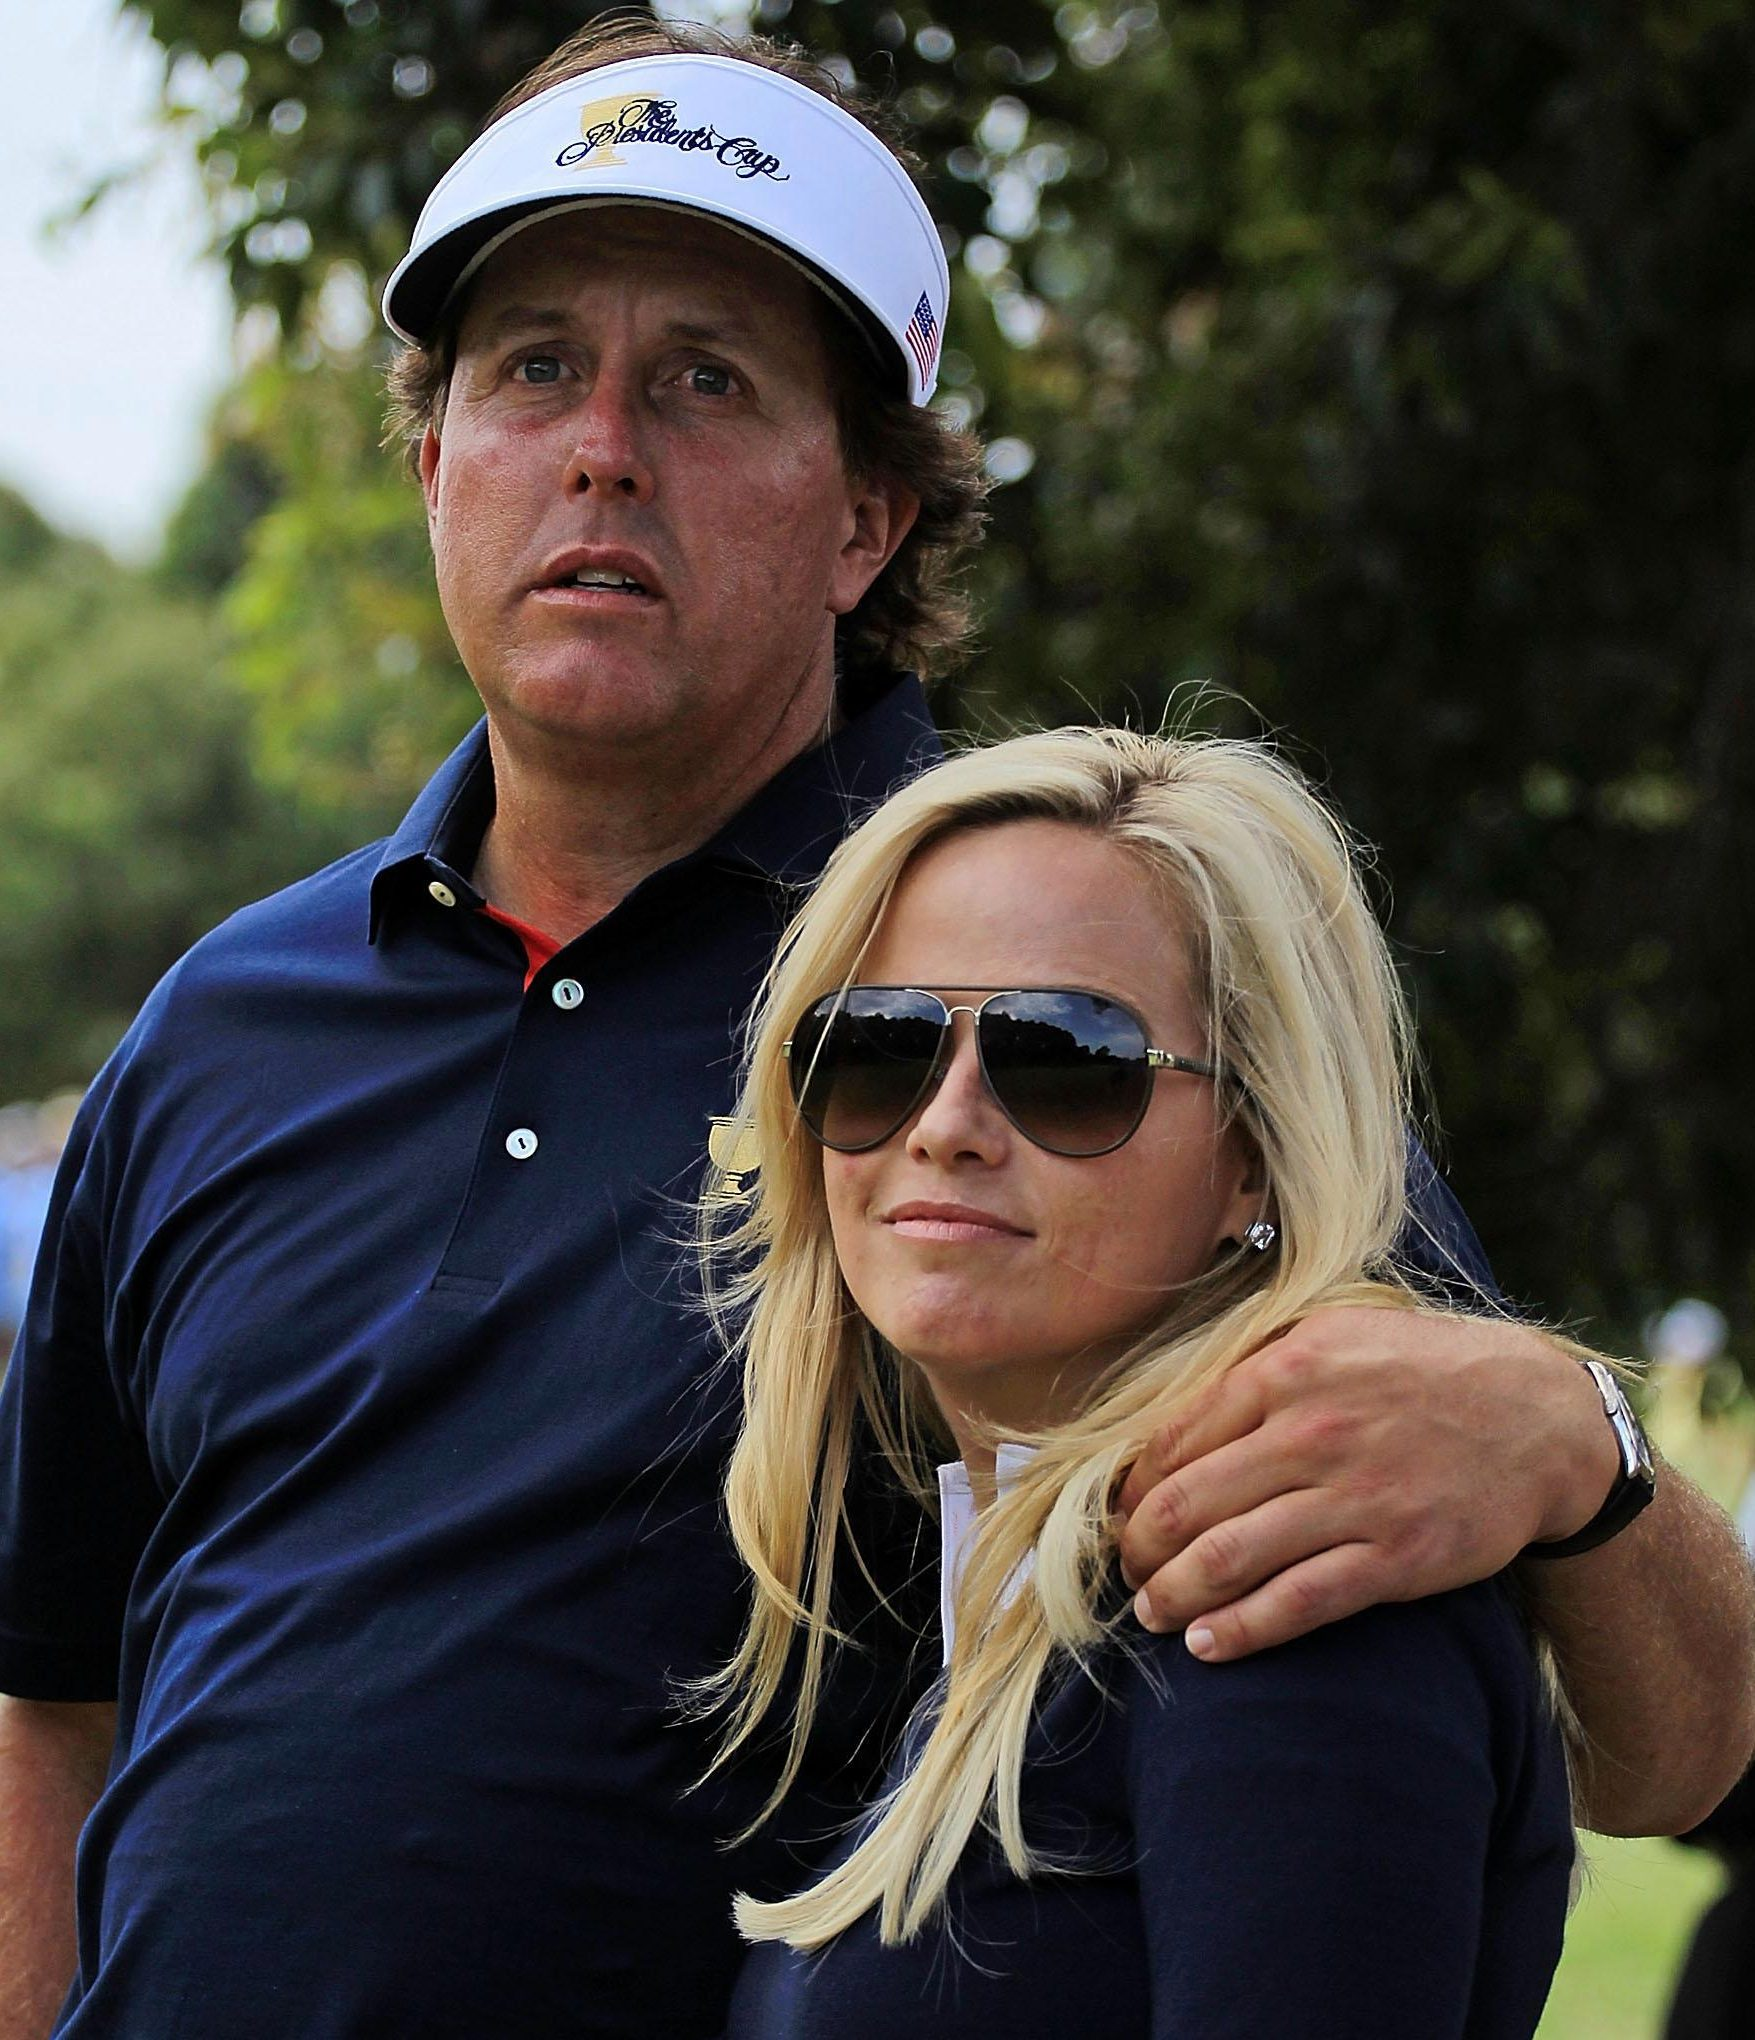 Phil and Amy Mickelson met when they were both students at Arizona State University